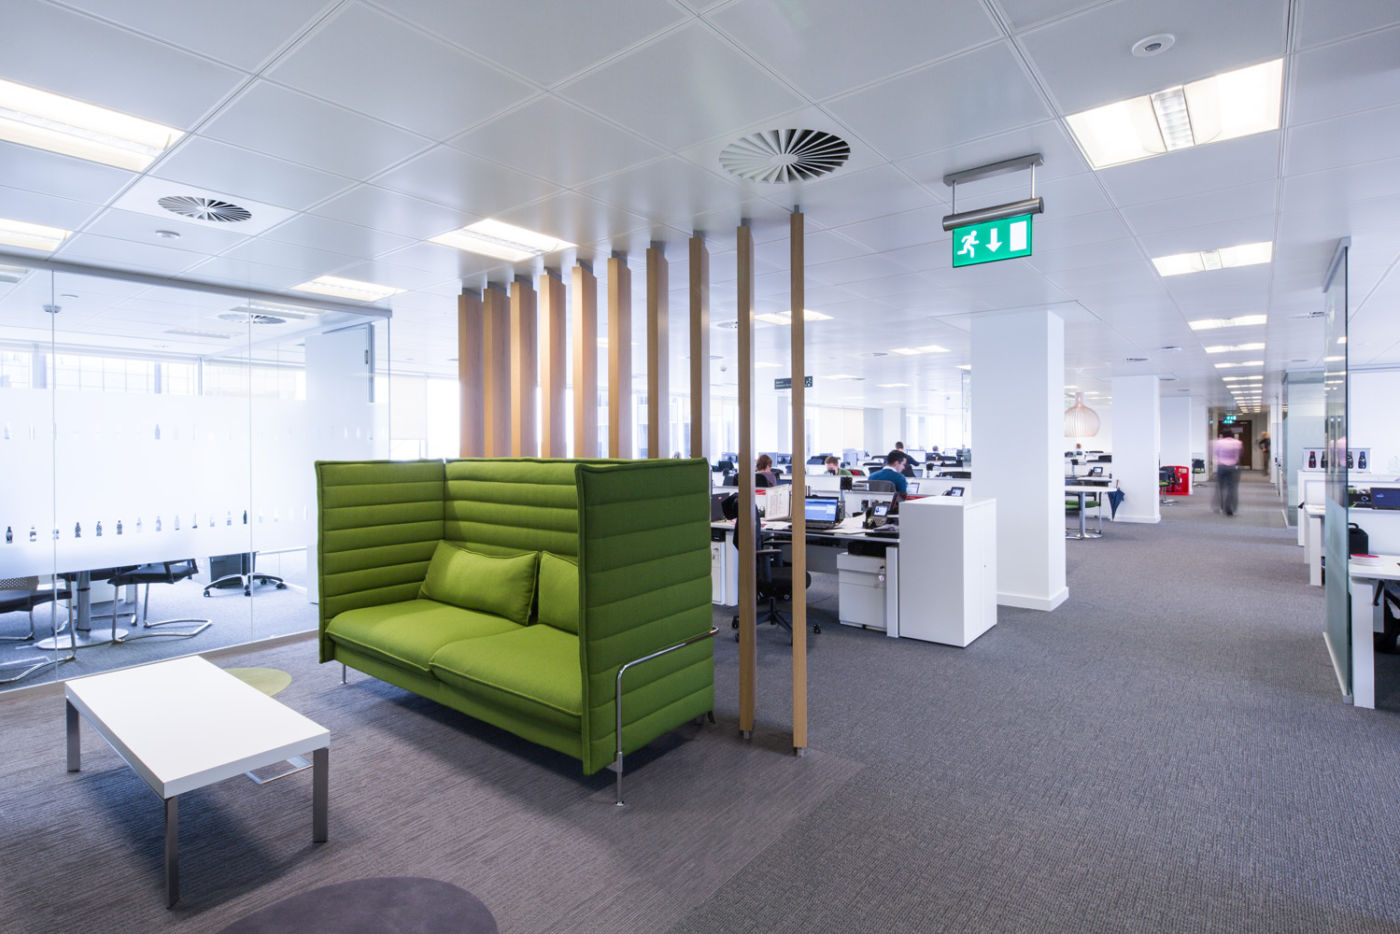 Bright green seating booth in office seating area